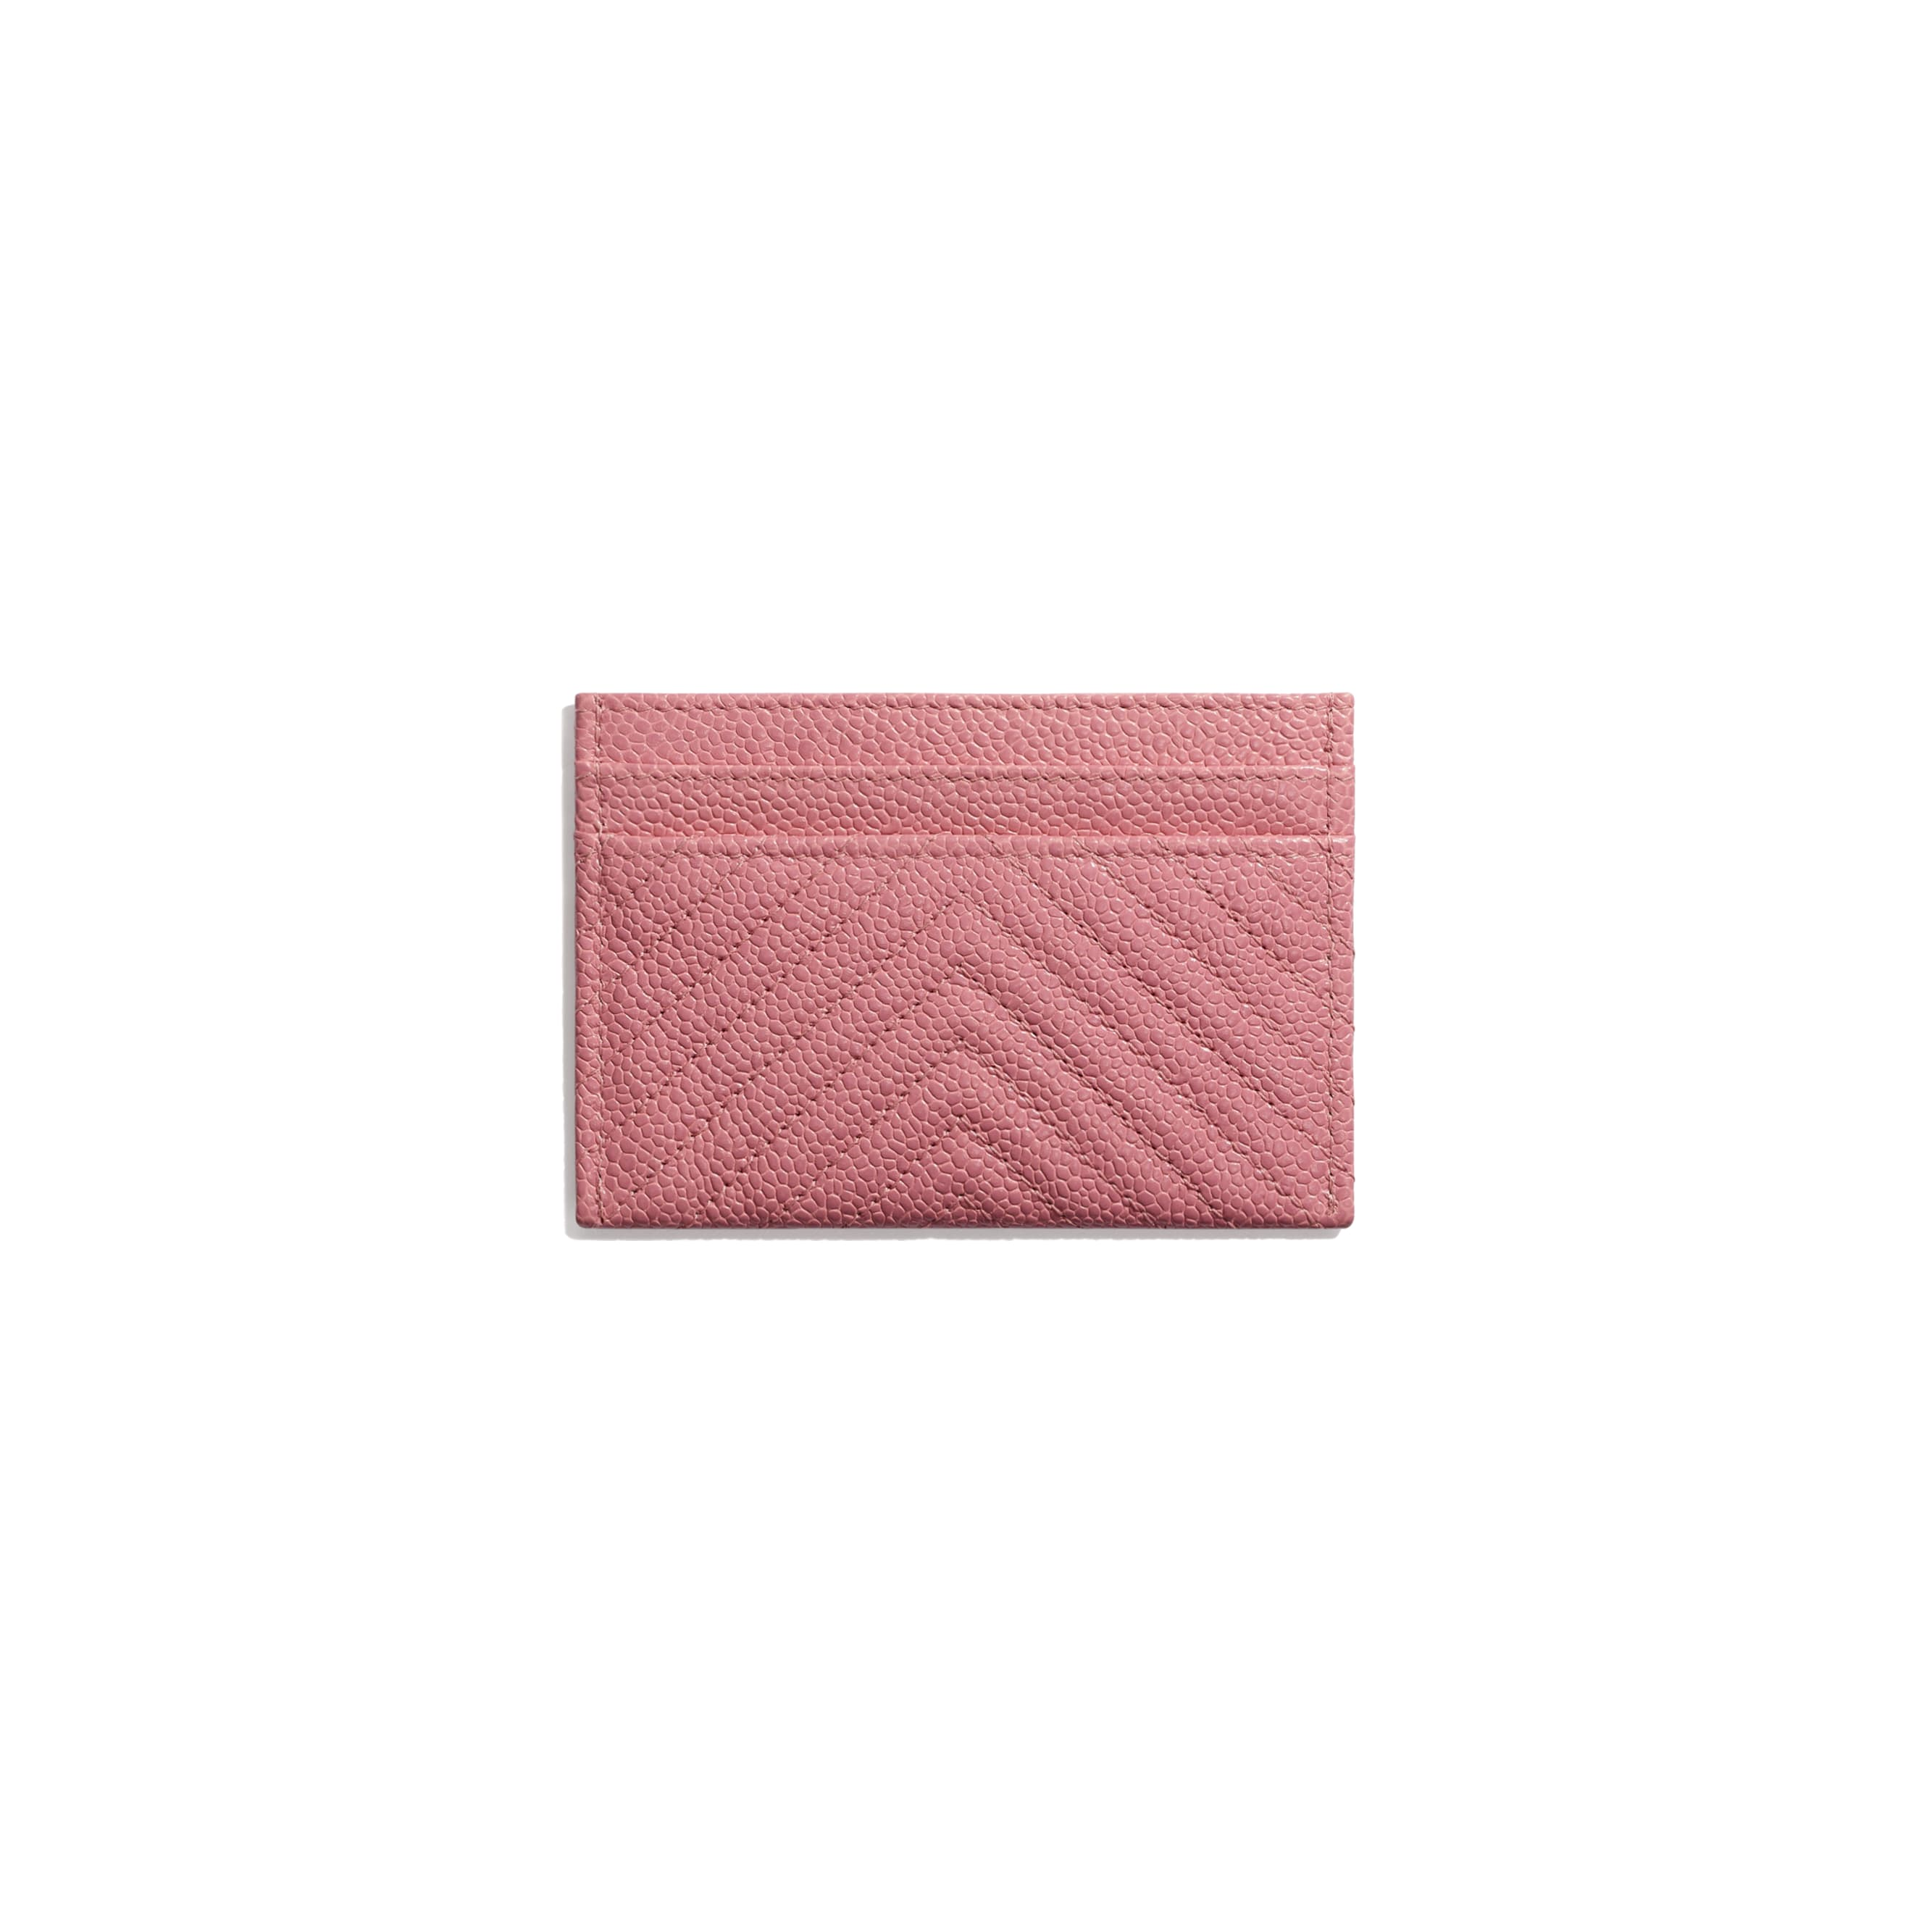 BOY CHANEL Card Holder - Pink - Shiny Grained Calfskin & Silver-Tone Metal - CHANEL - Alternative view - see standard sized version